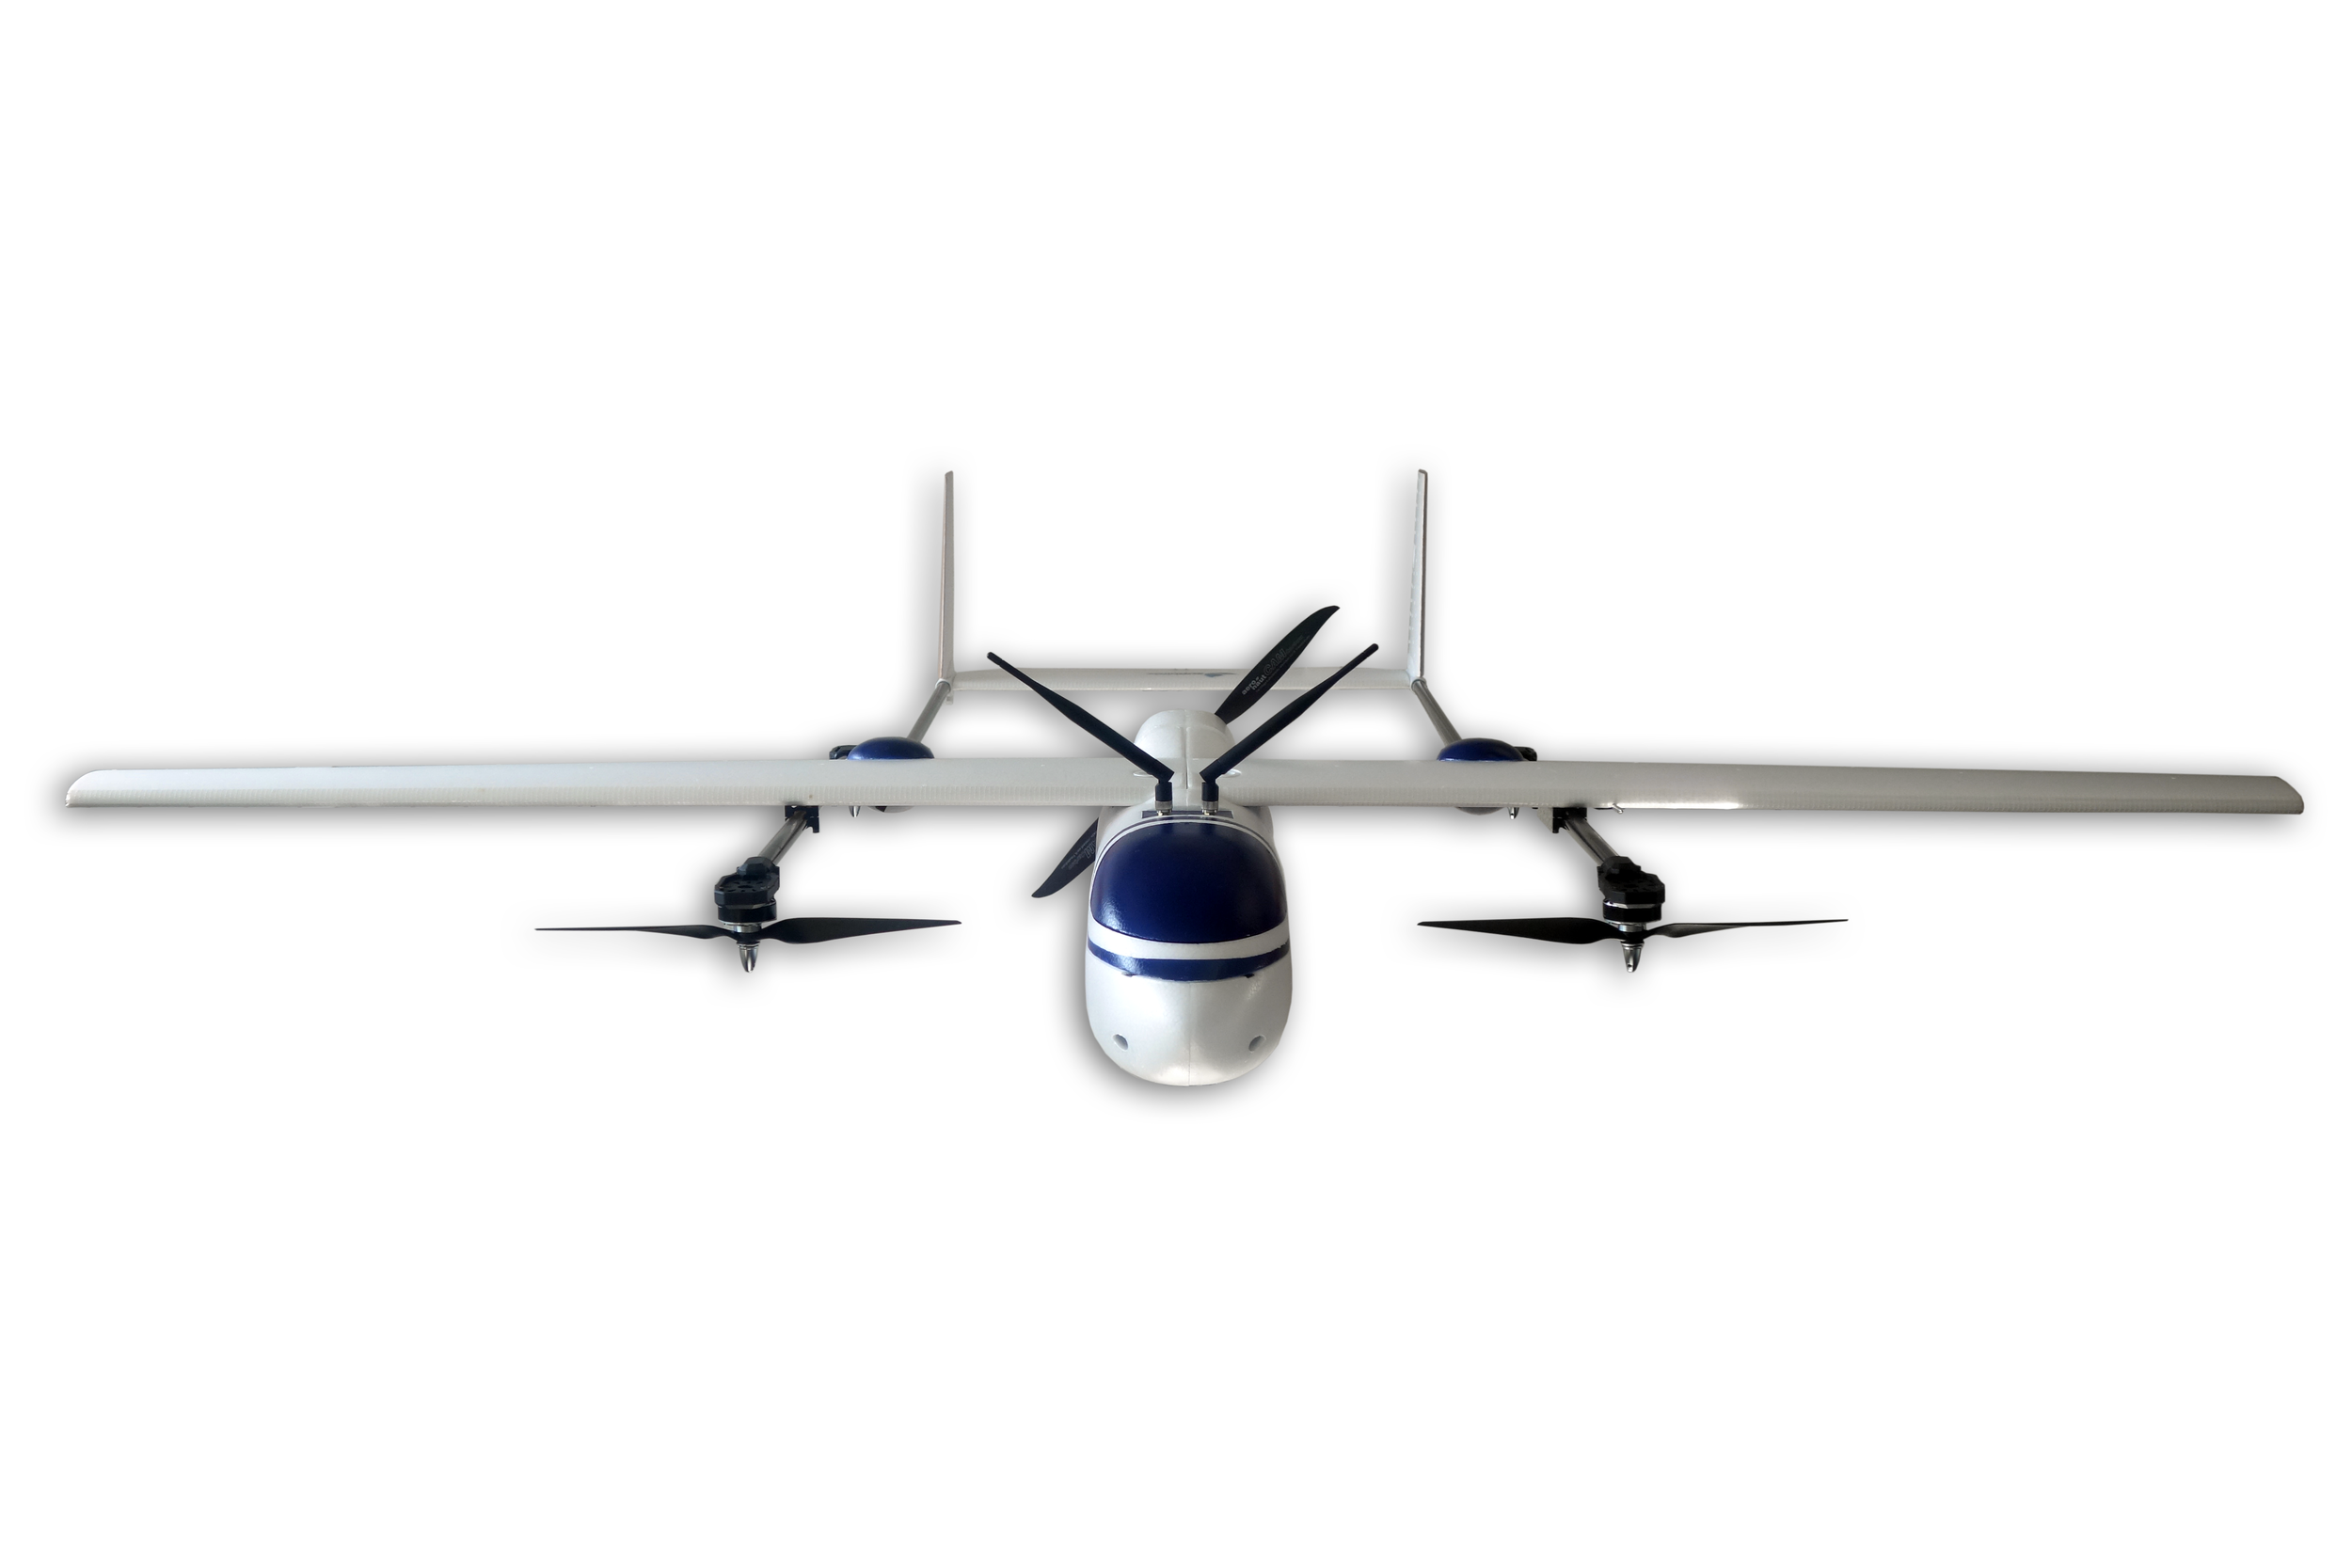 Efficient Propellers - Endurance is all about efficiency. Our unique experience in continuous solar flights taught us how to design the best propulsion systems for an optimal flight time. Our high efficiency folding propeller provides the highest level of thrust while being silent during the flight.